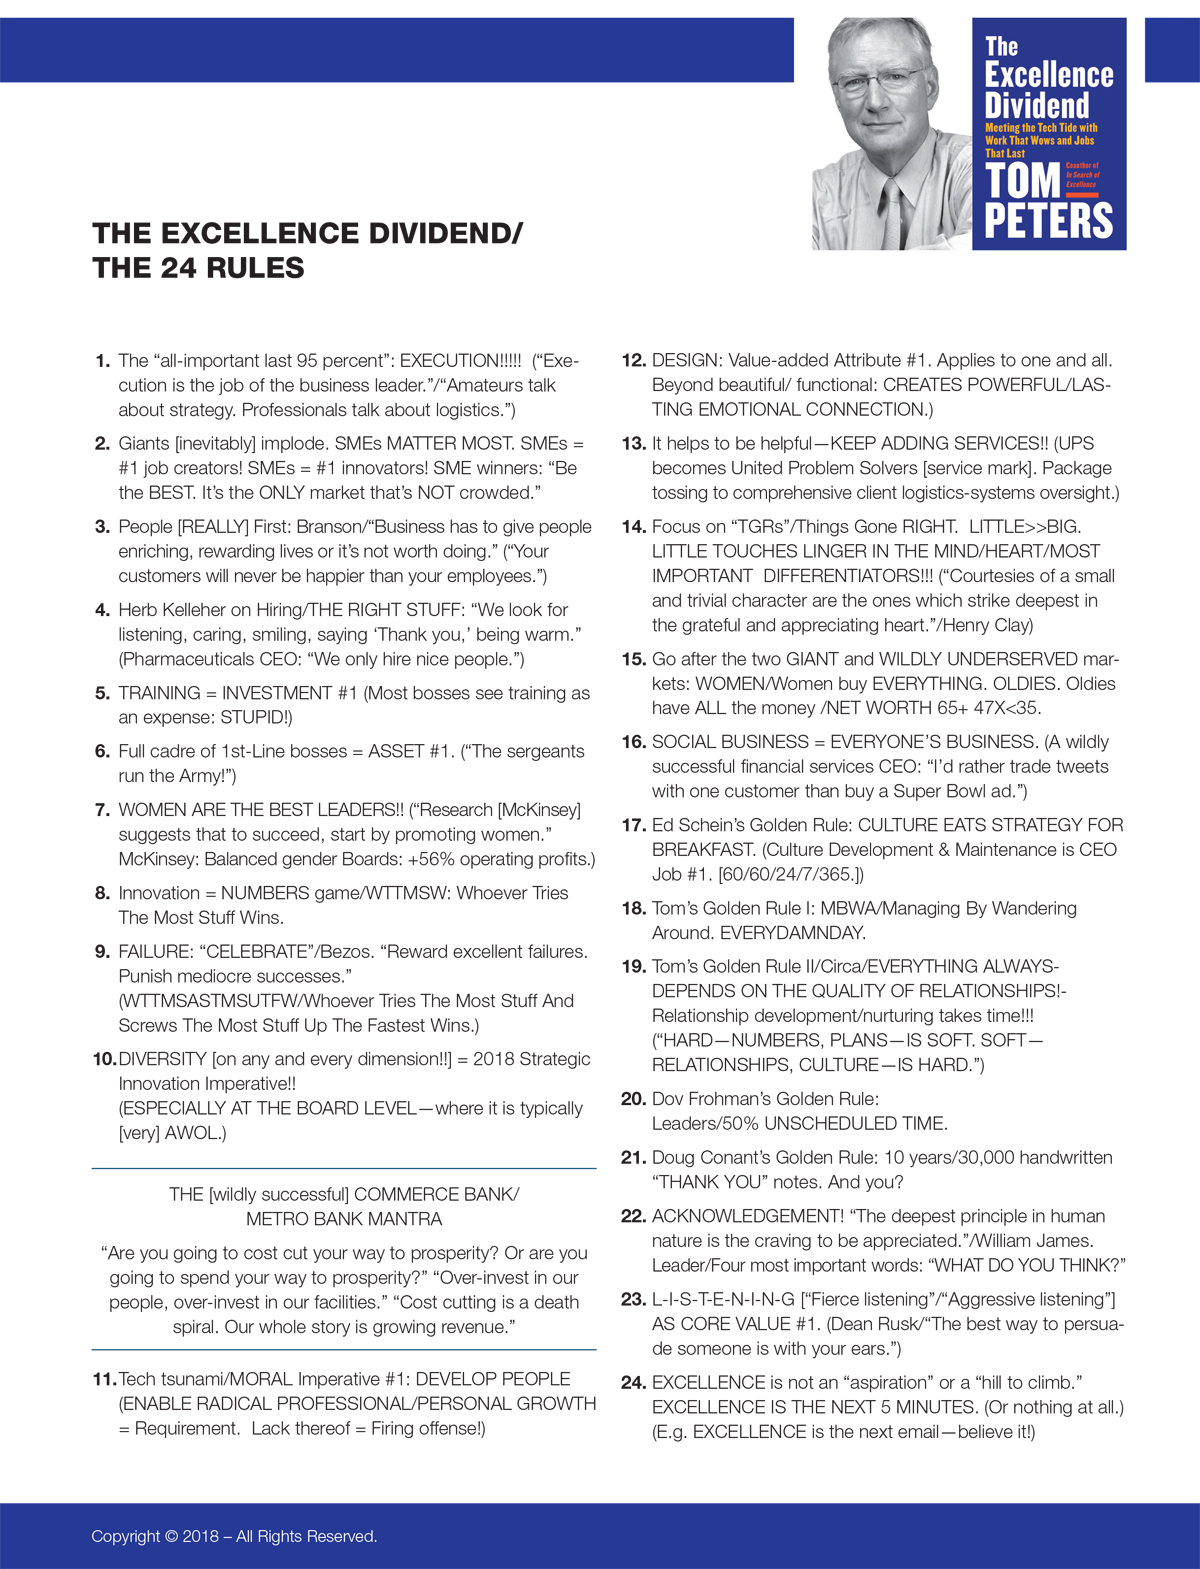 The 24 Rules by Tom Peters